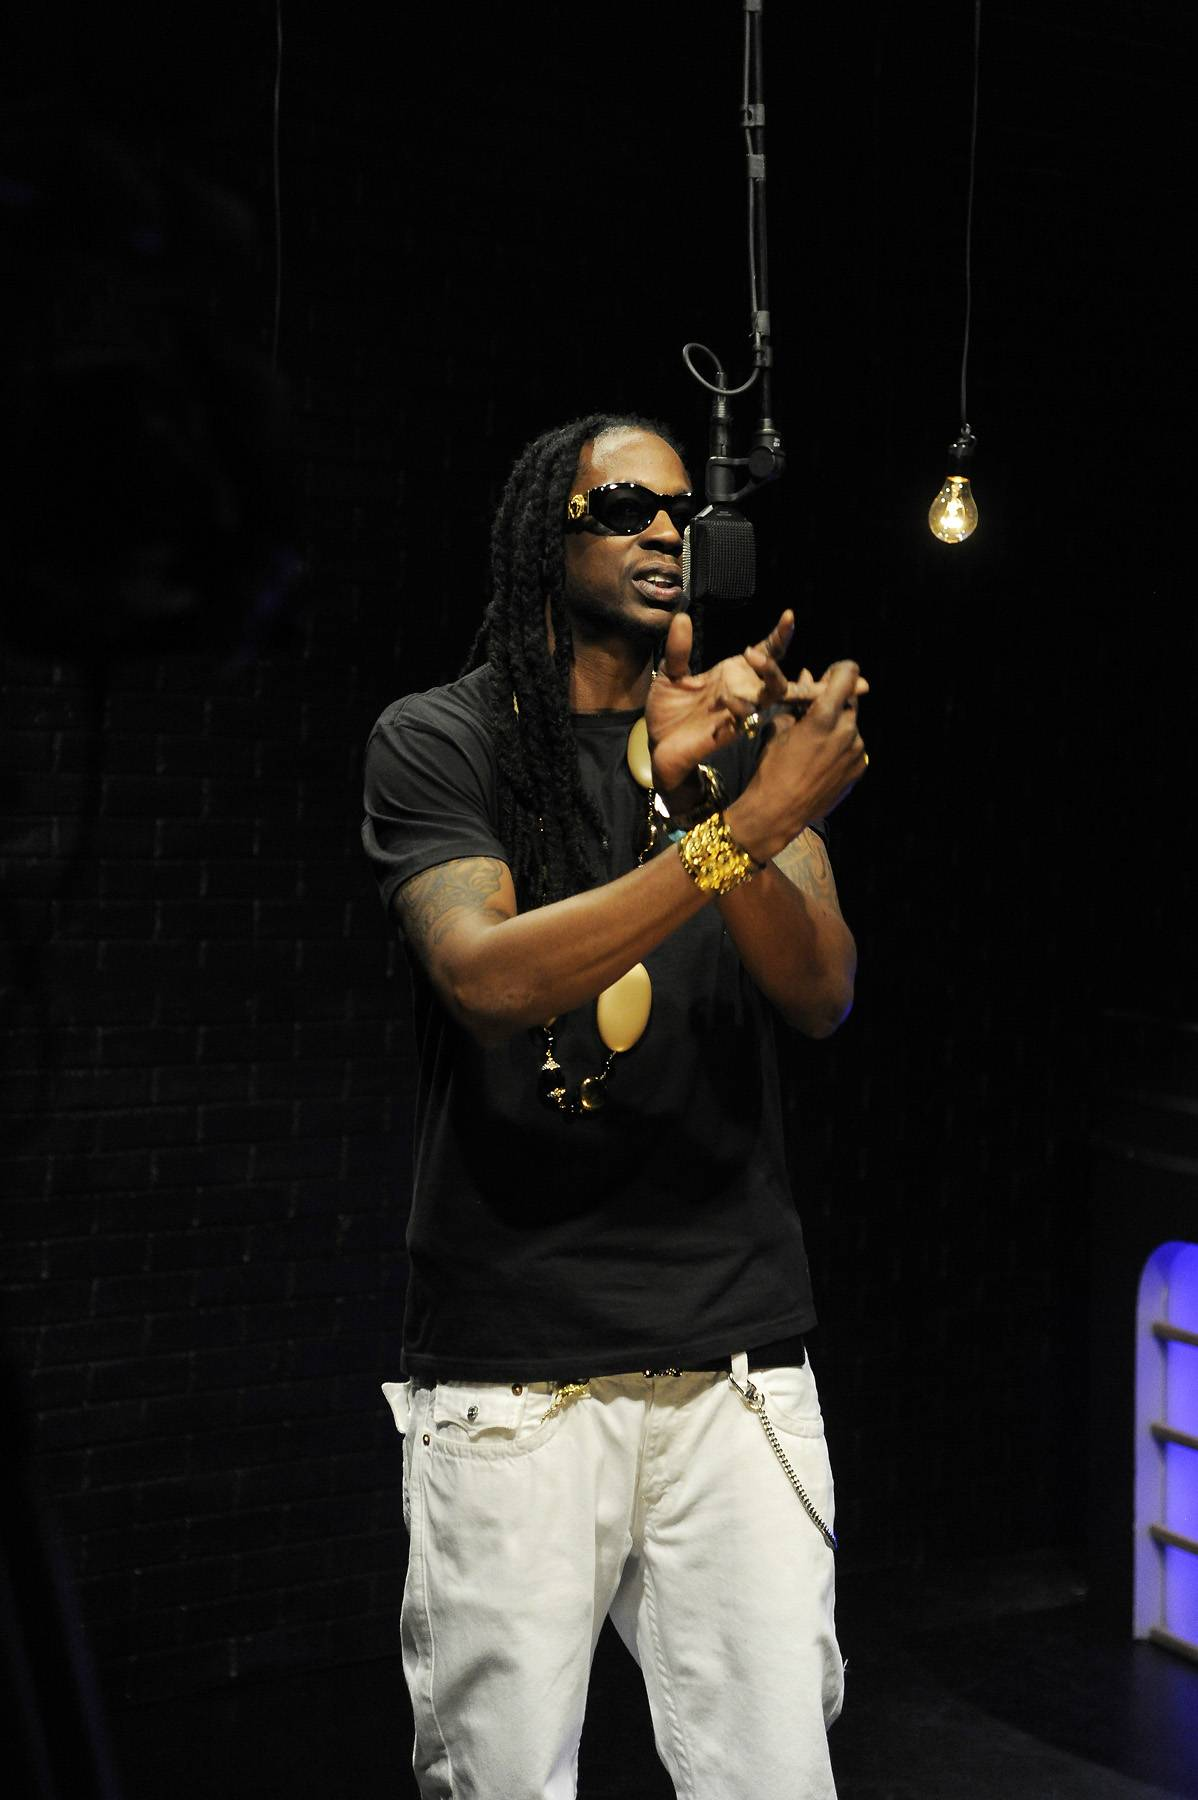 I Go Hard - 2 Chainz delivers a freestyle in the Black Room at 106 & Park, April 9, 2012. (photo: John Ricard / BET)